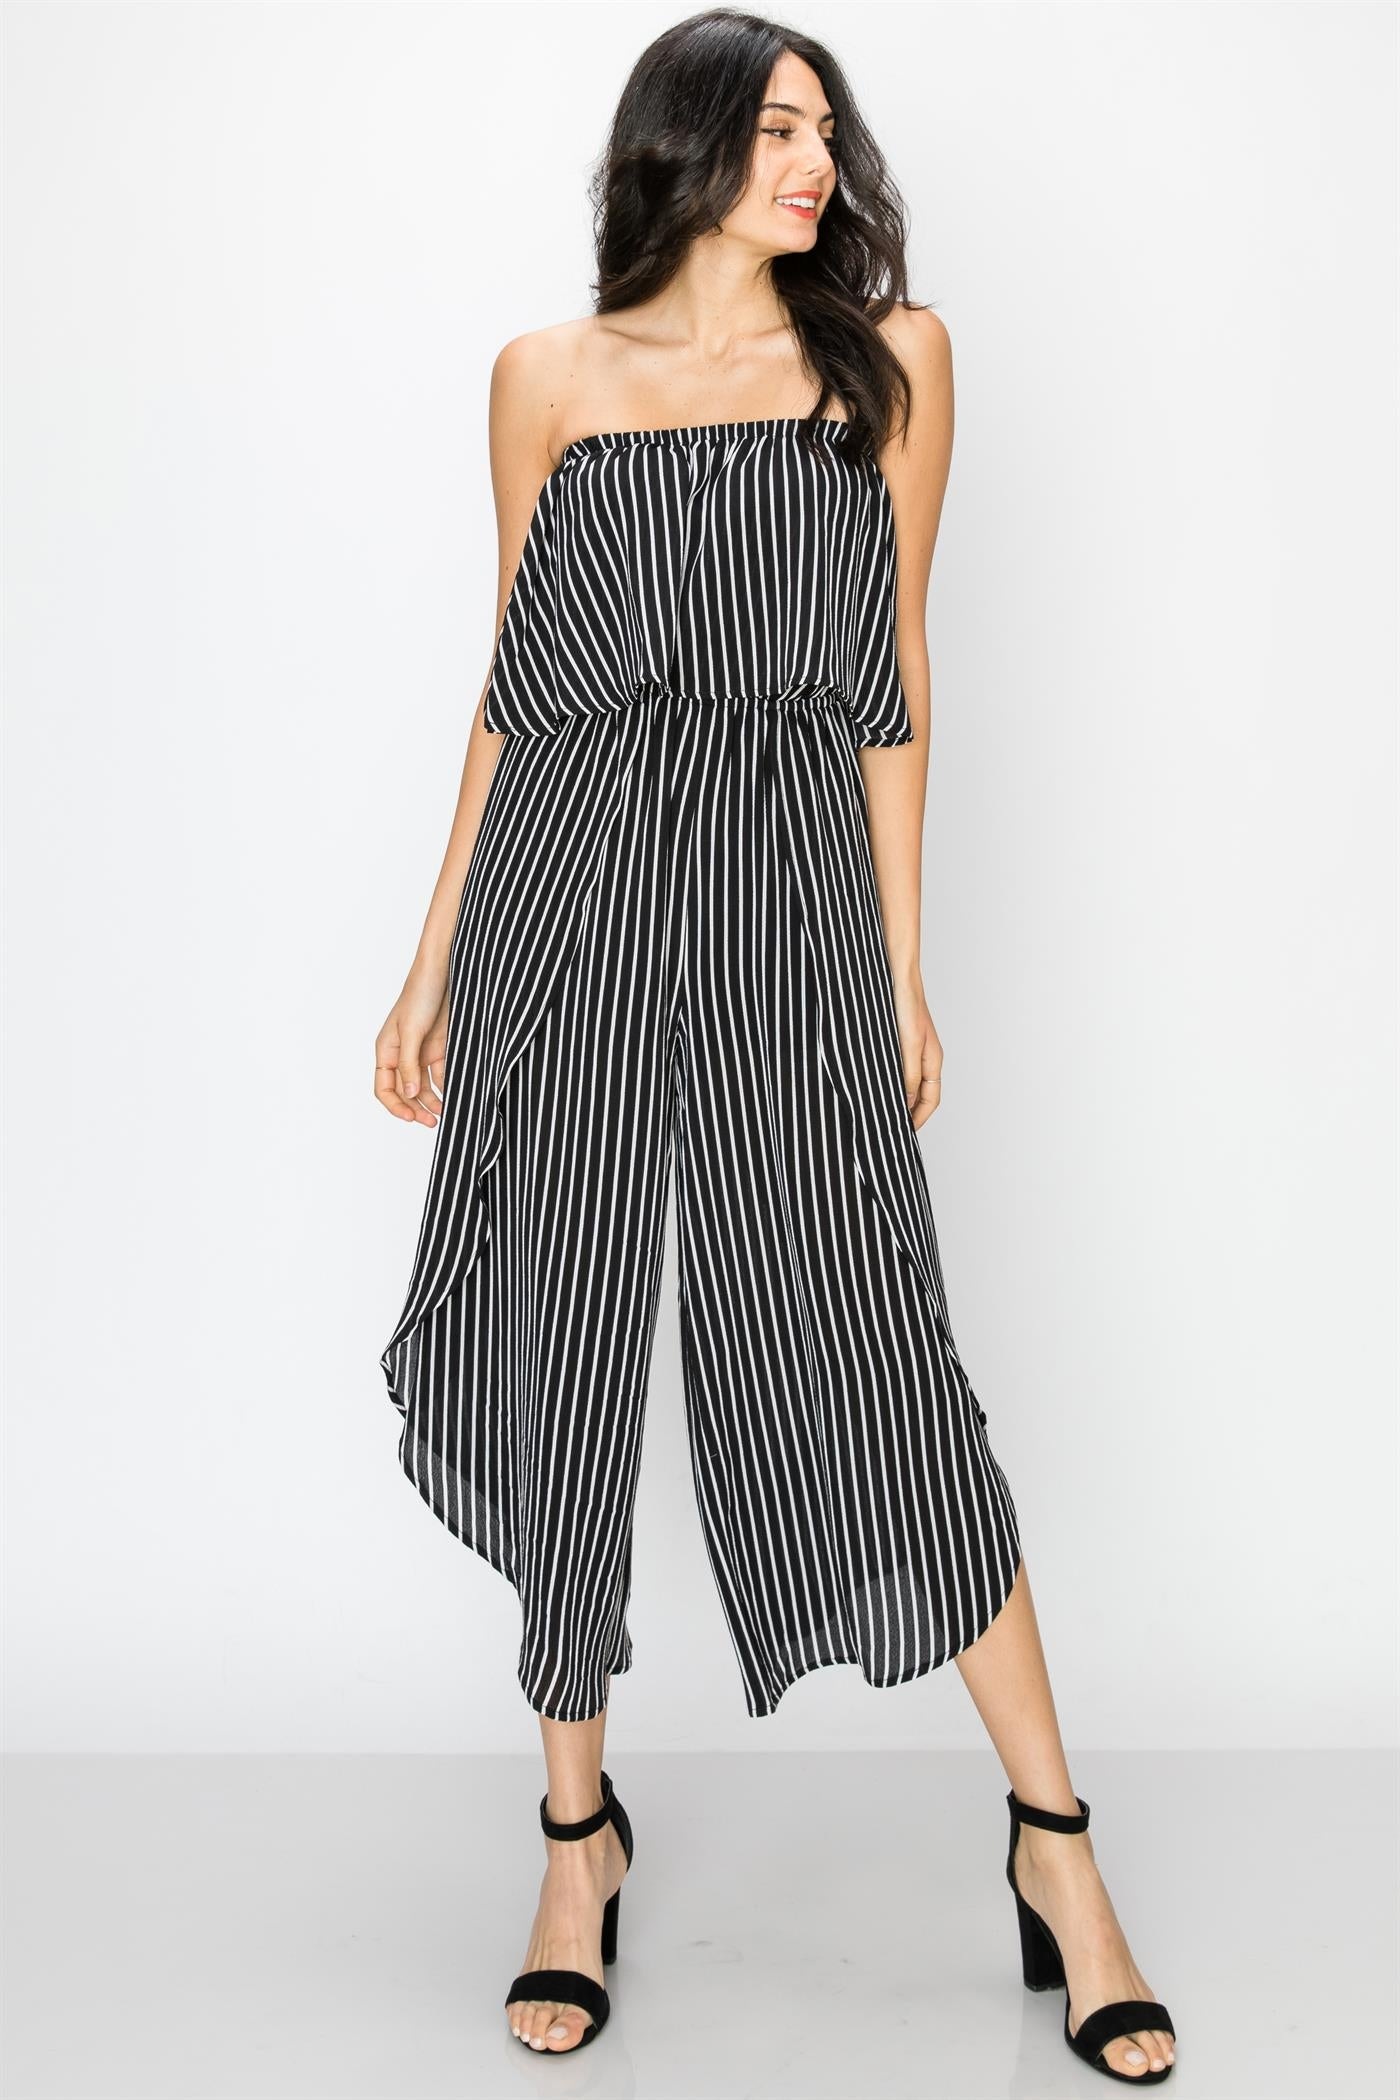 f83953434408 Black and White Striped Strapless Gaucho Jumpsuit – Shop For You